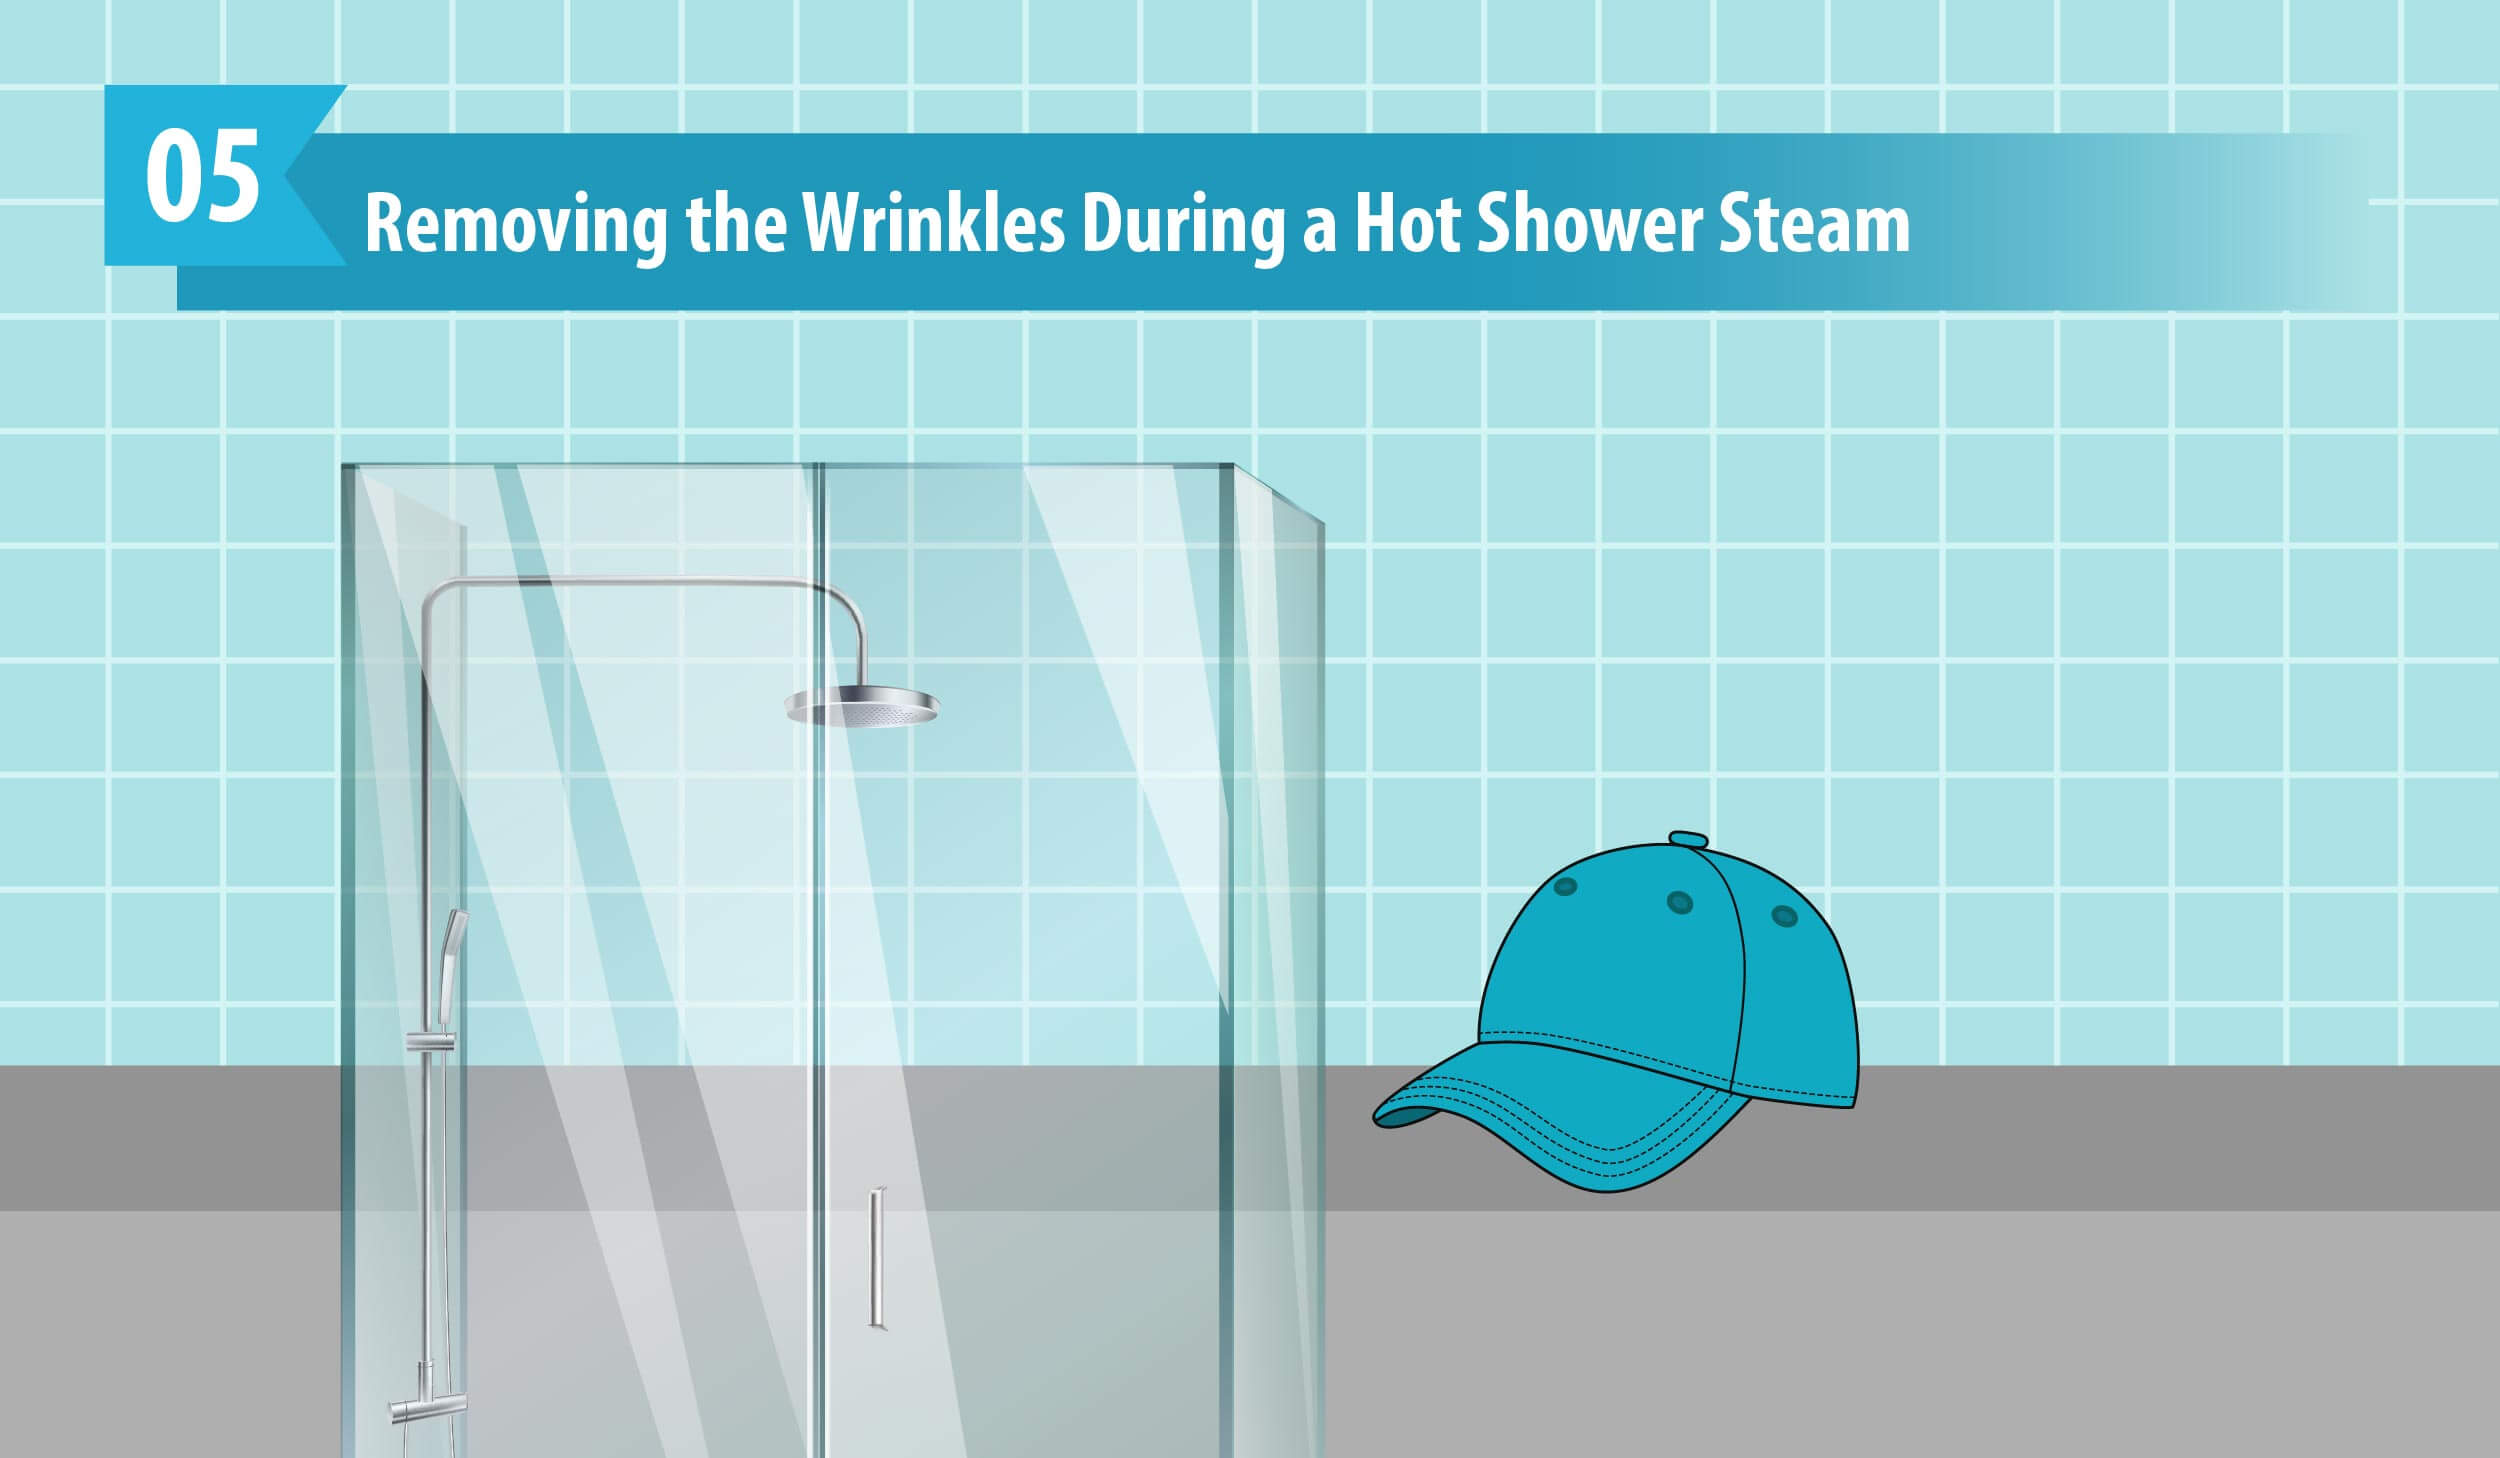 Removing the Wrinkles During a Hot Shower Steam